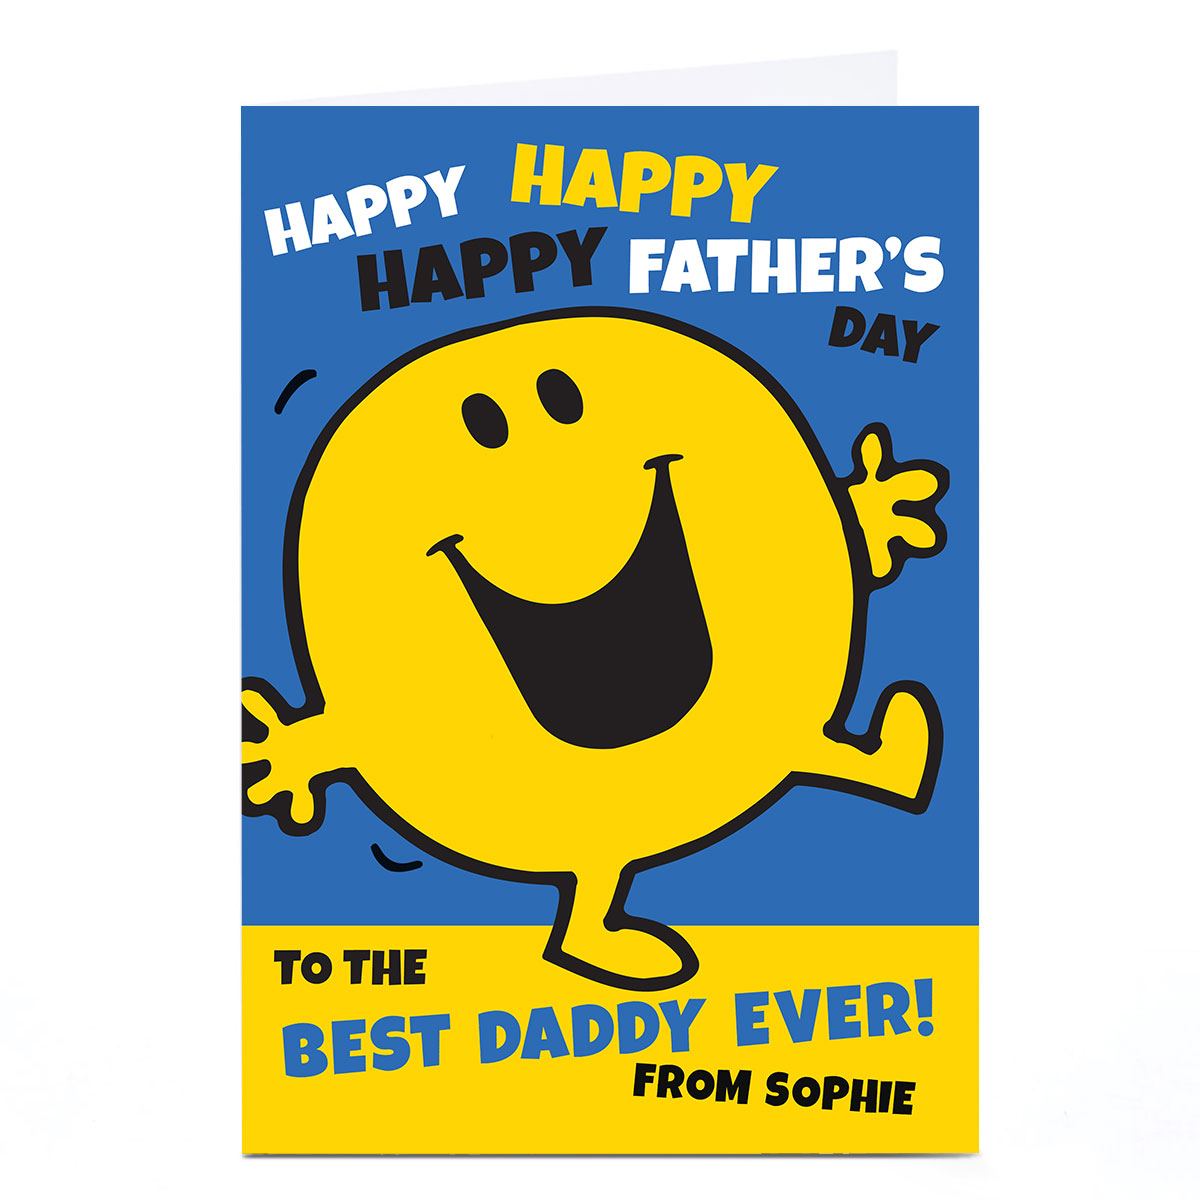 Personalised Mr.Men Father's Day Card - Happy Happy Happy